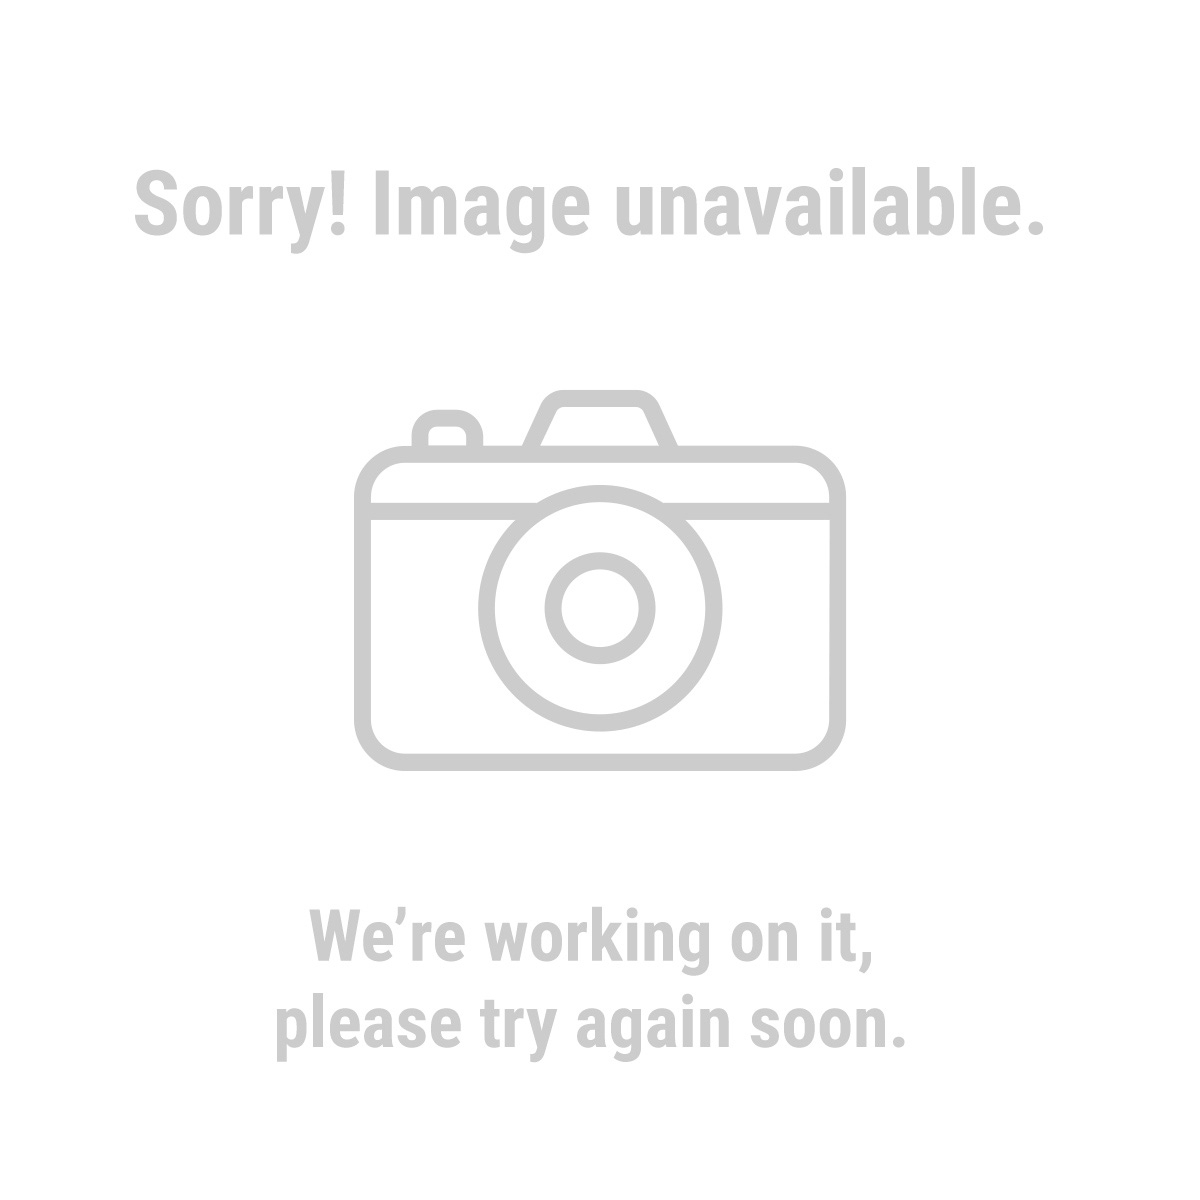 Haul-Master 93170 Pack of 2 Flush-Mount Truck Bed Anchors